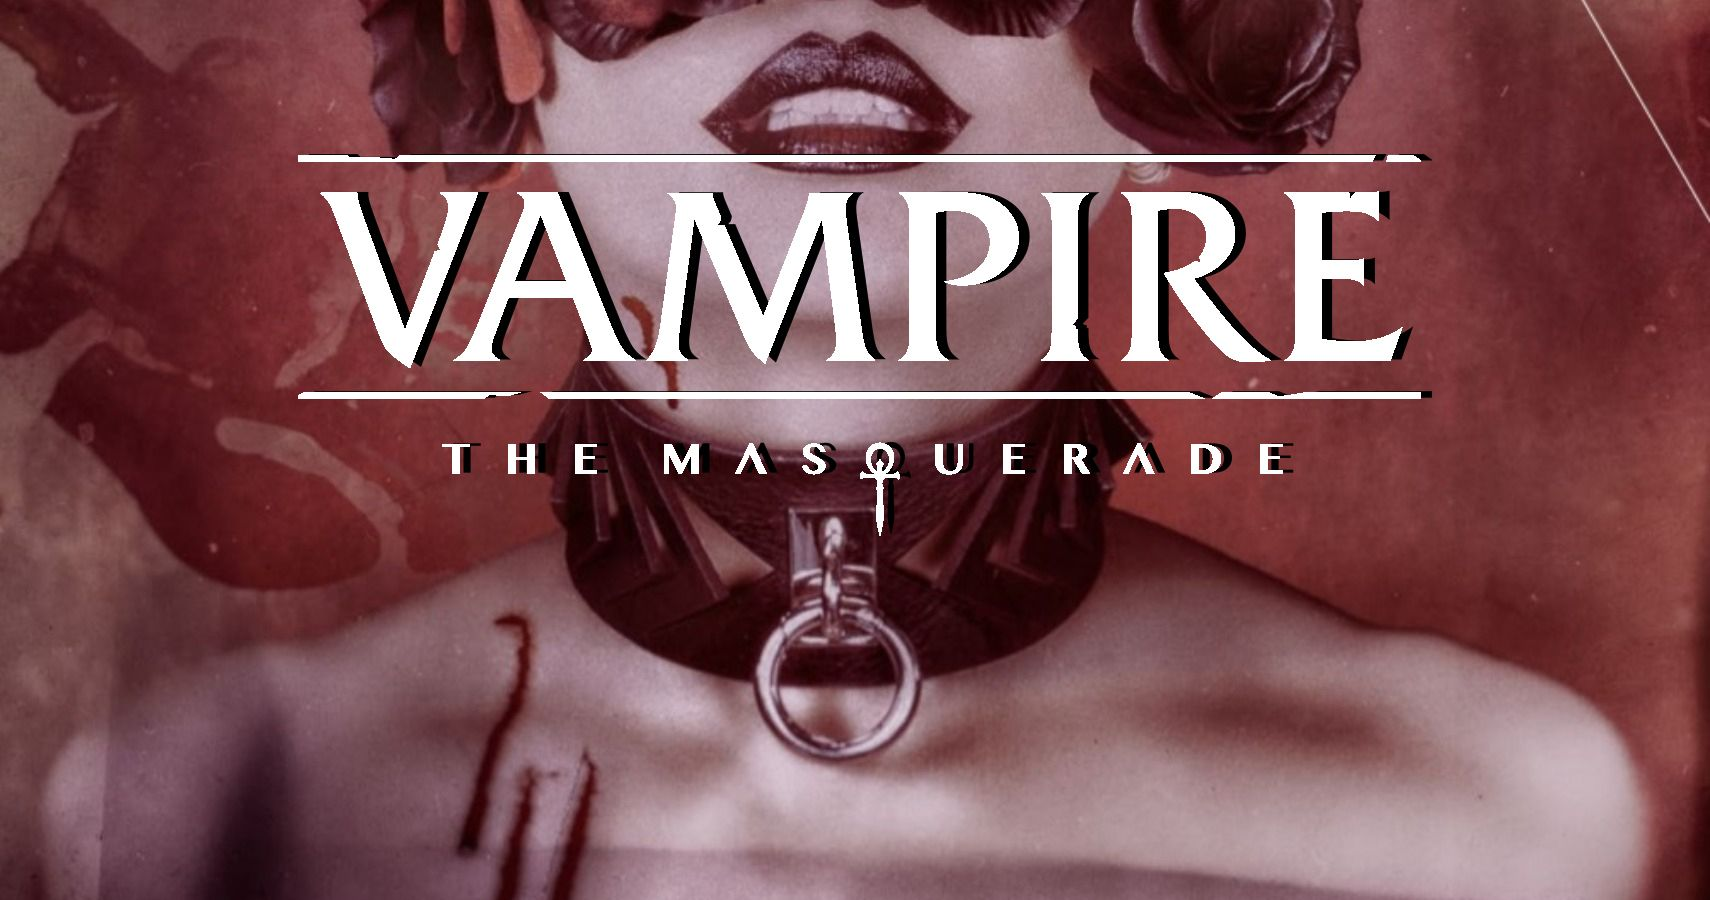 Play Vampire: The Masquerade If You Want More Roleplaying Than D&D